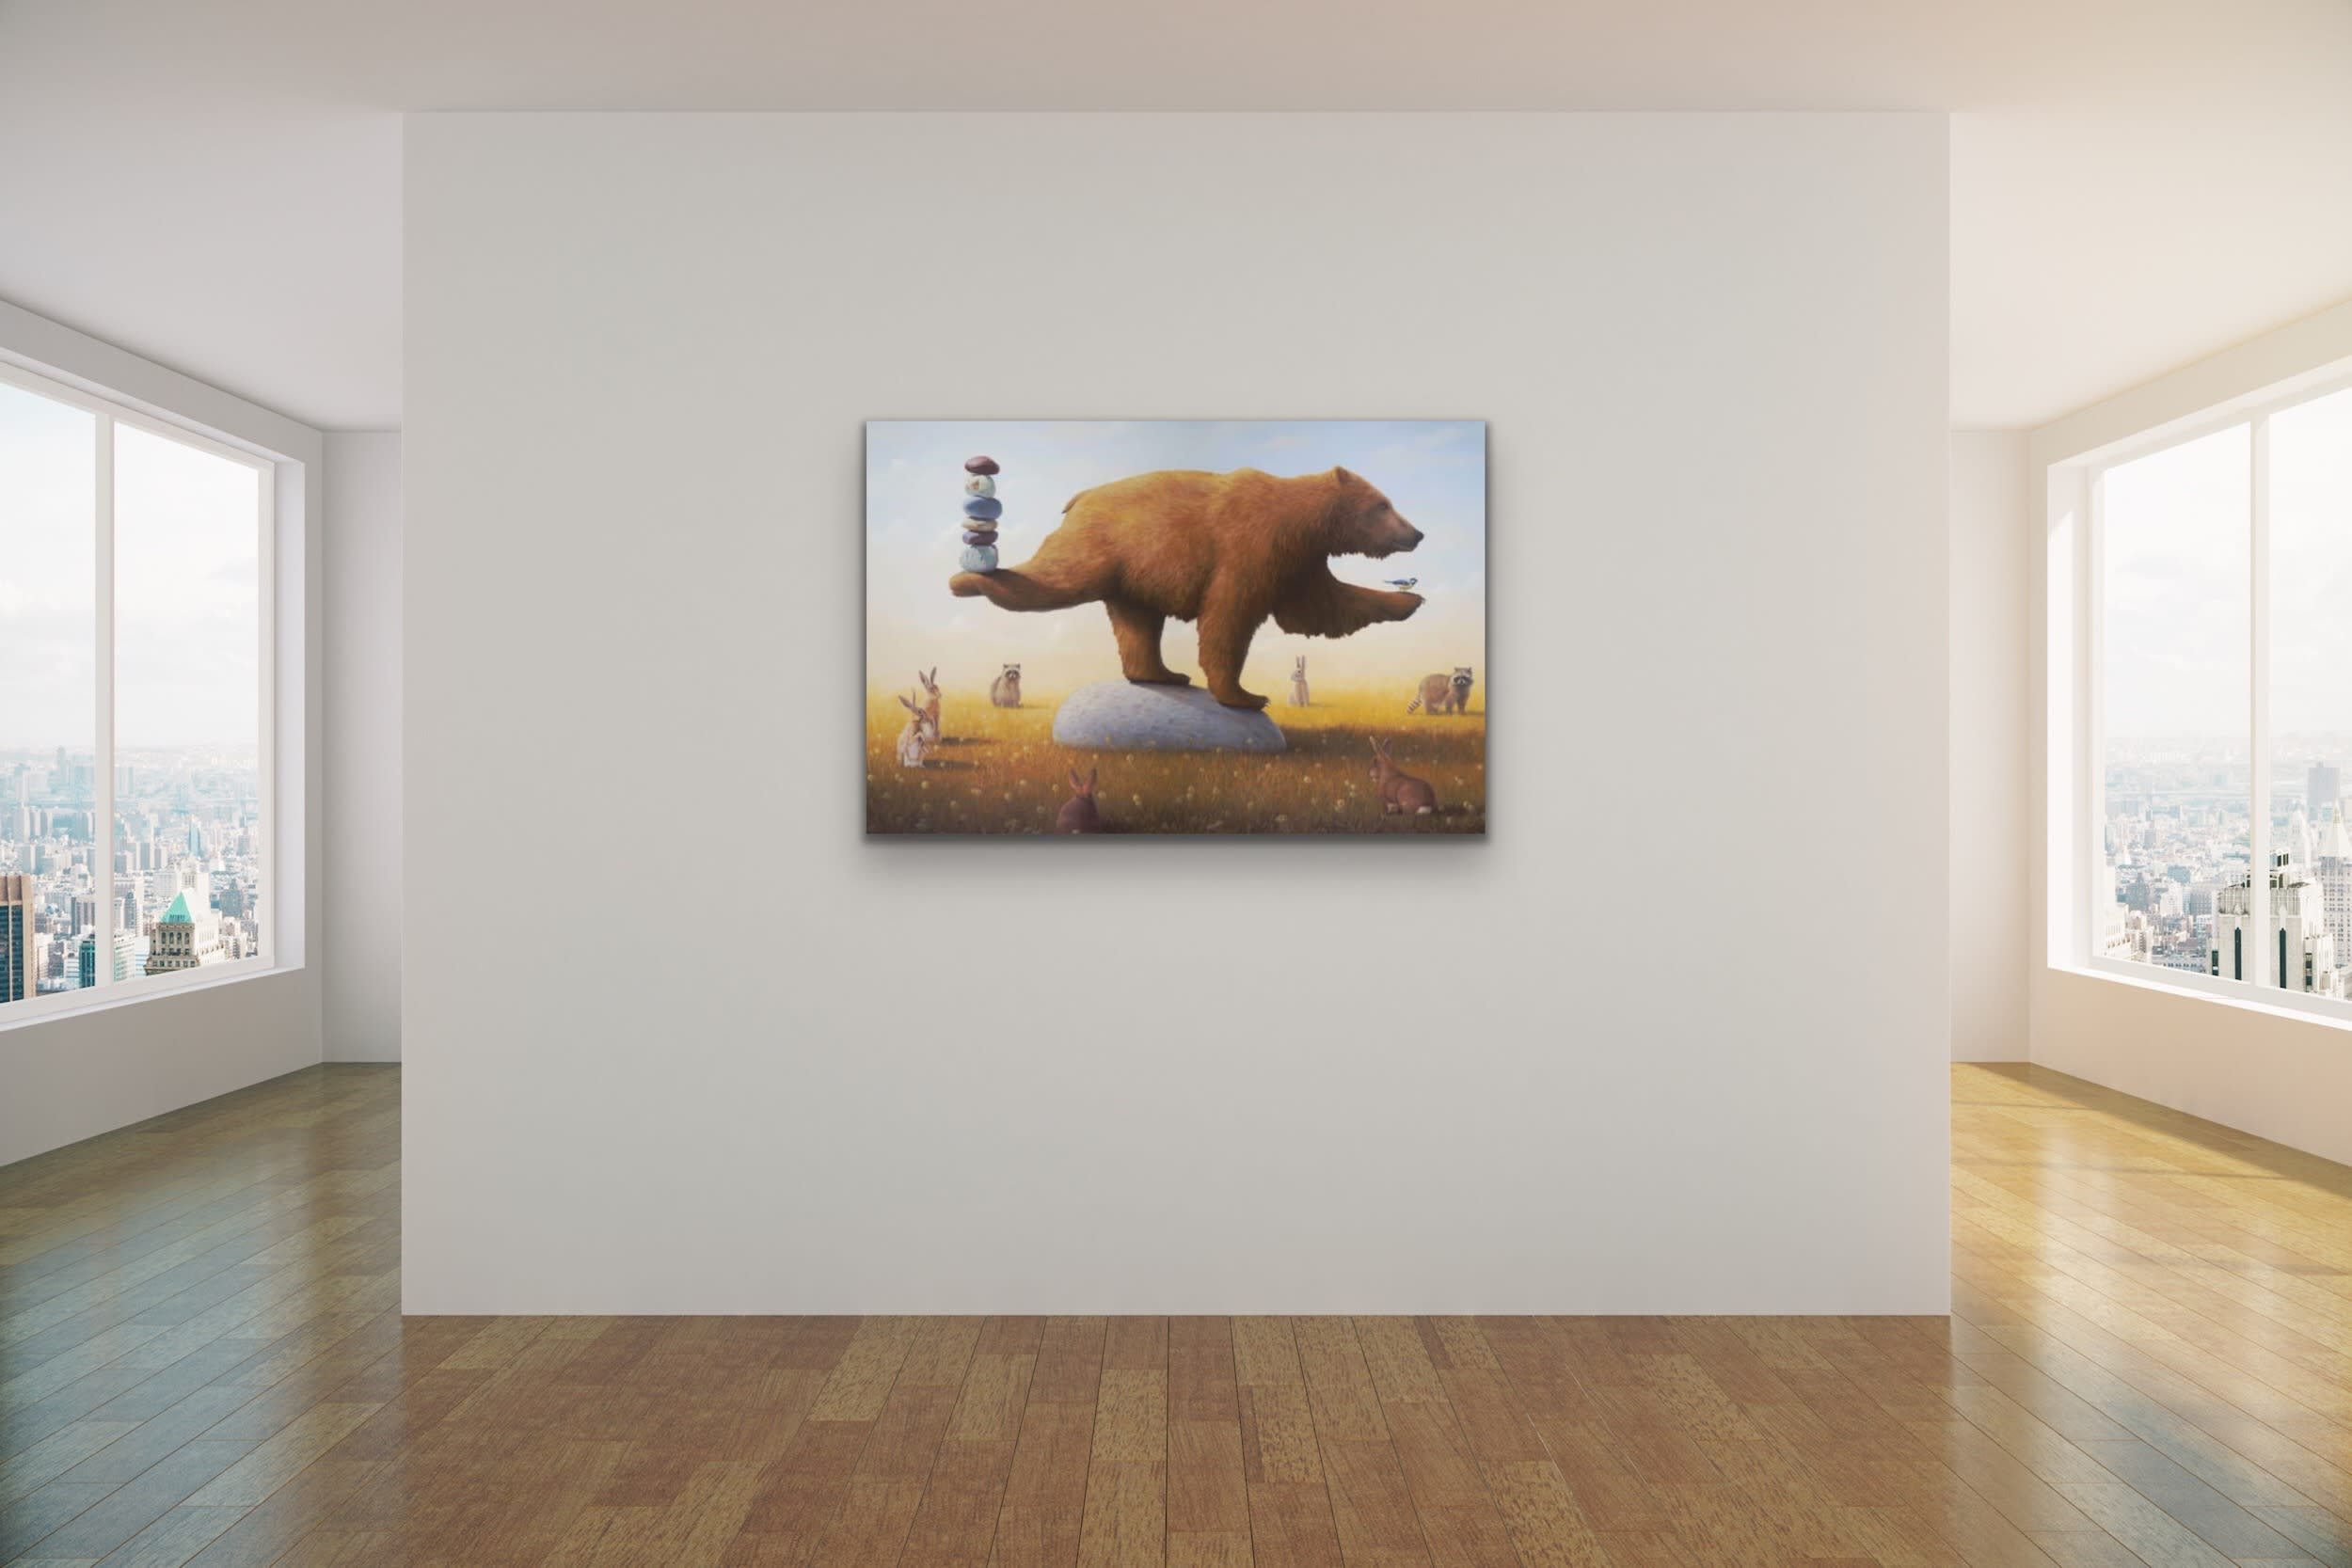 <div class='title'>           Paul Bond Magical Realism Poetry Serene Landscape Animals Nature Surreal Metaphorical Whimsical Fantasy Evo Art Maui Lahaina Front Street Art Gallery 69         </div>